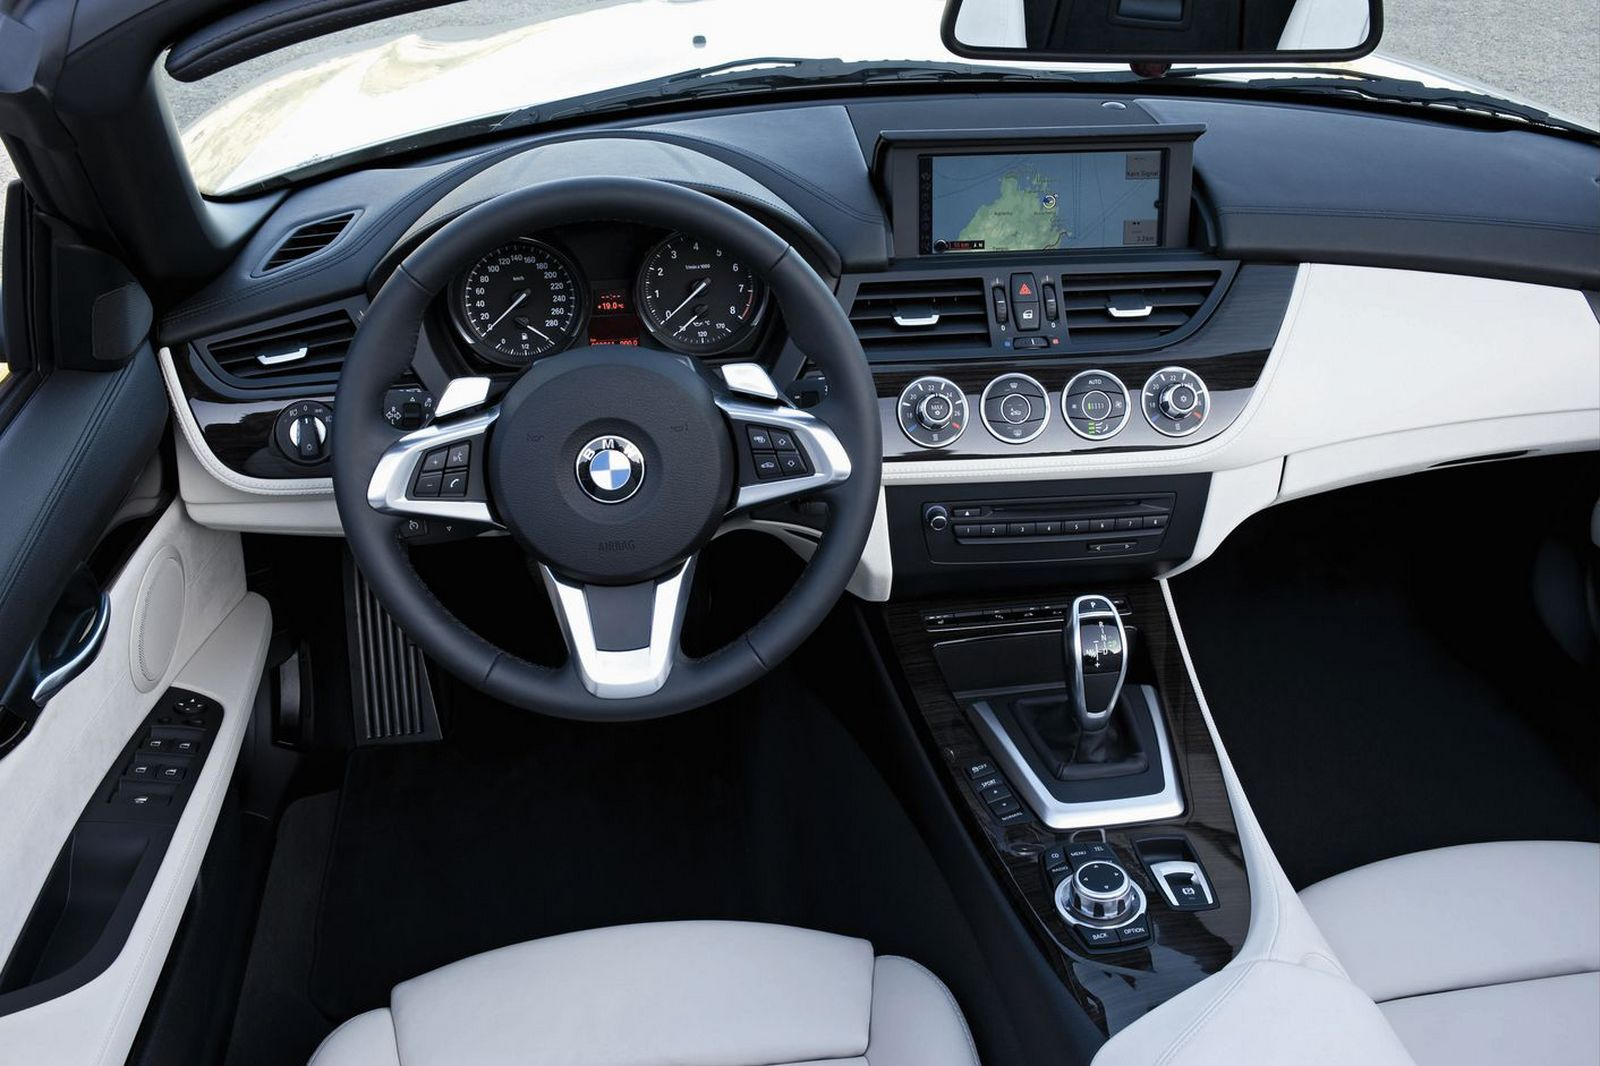 2009 bmw z4 interior design 001